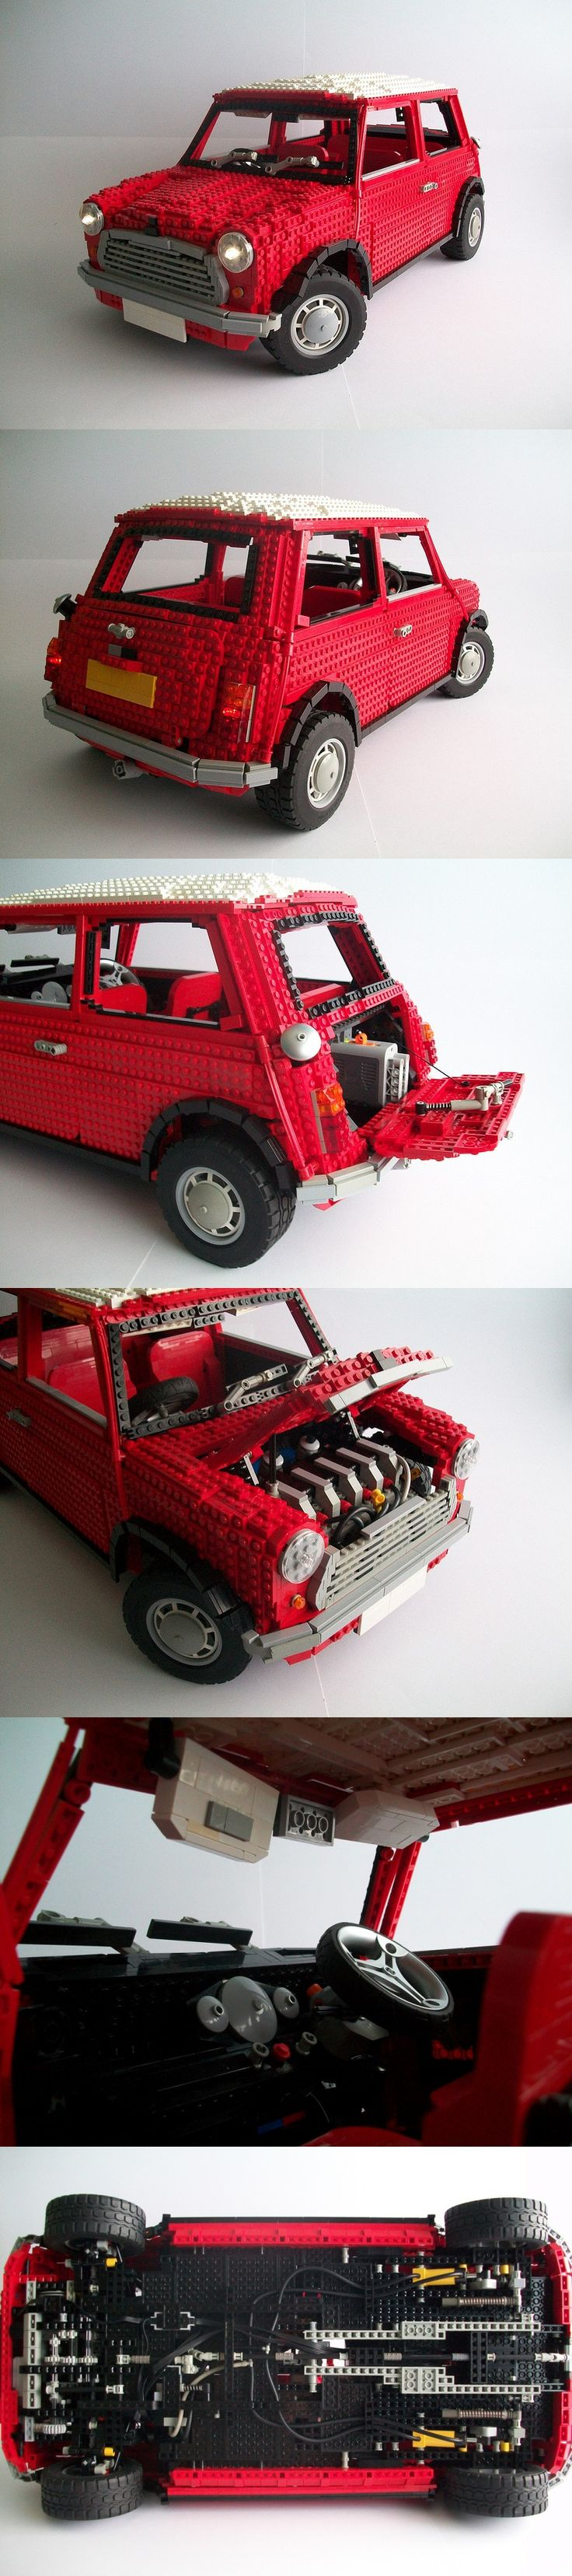 Homemade car toys  Mikaila Orlowski mikailaorlowski on Pinterest